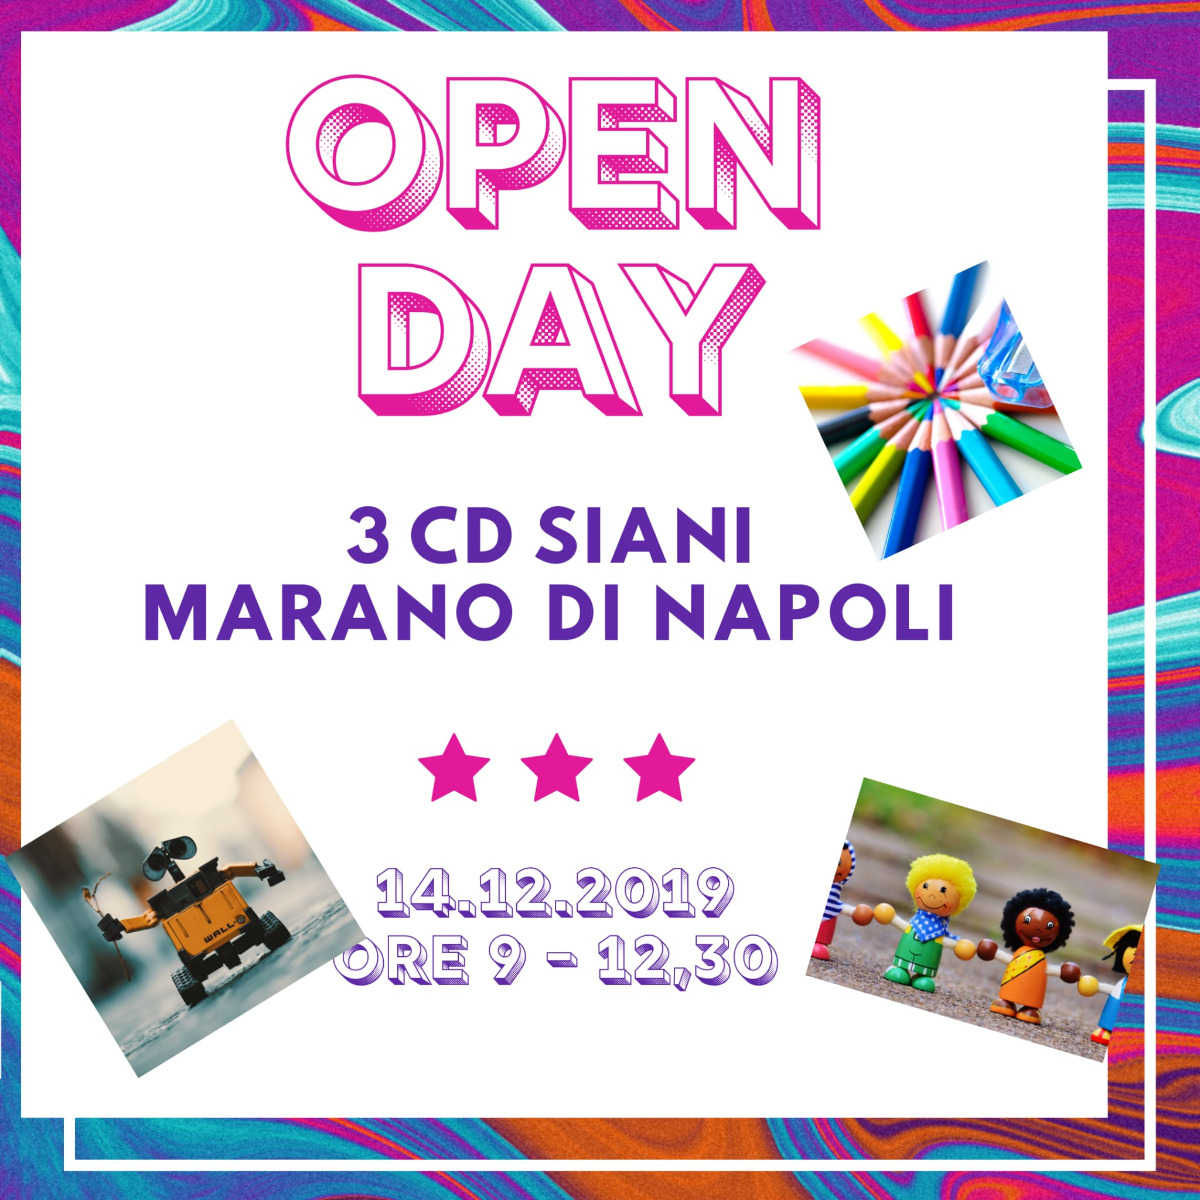 OPEN DAY alla SIANI